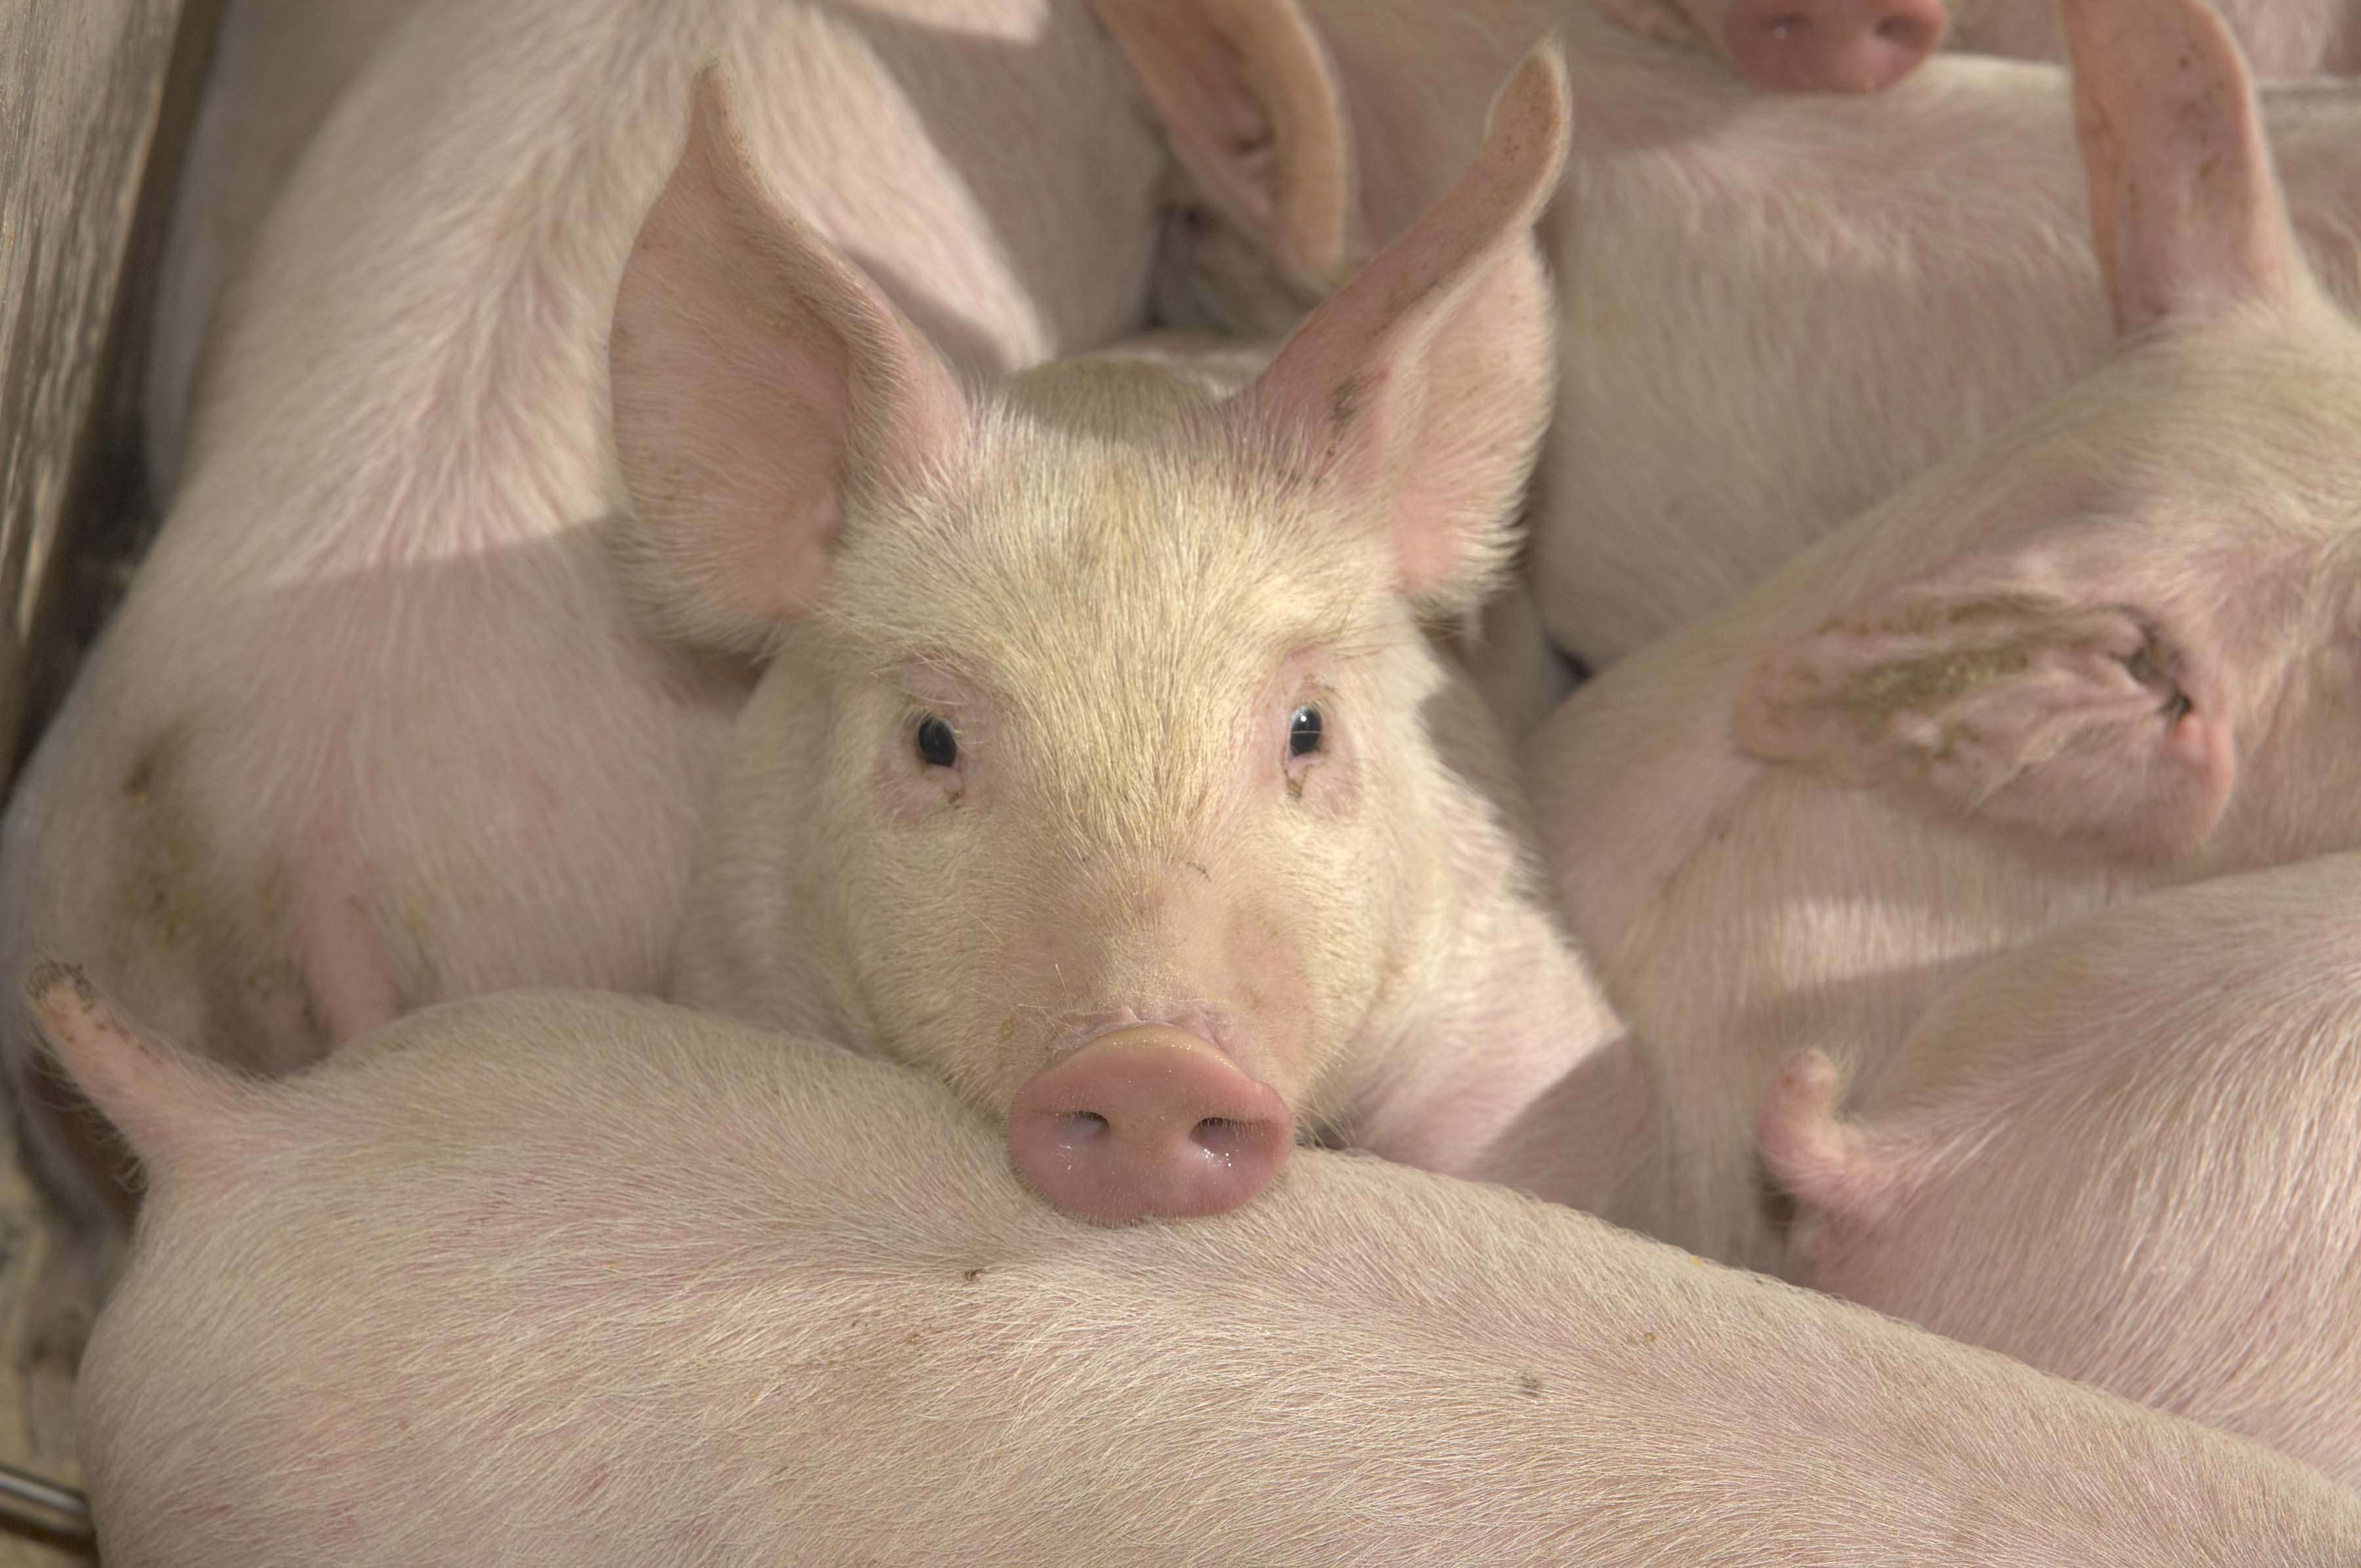 Image:United_Soybean_Board_PHOTO_-_Pig_resting_his_head.jpg